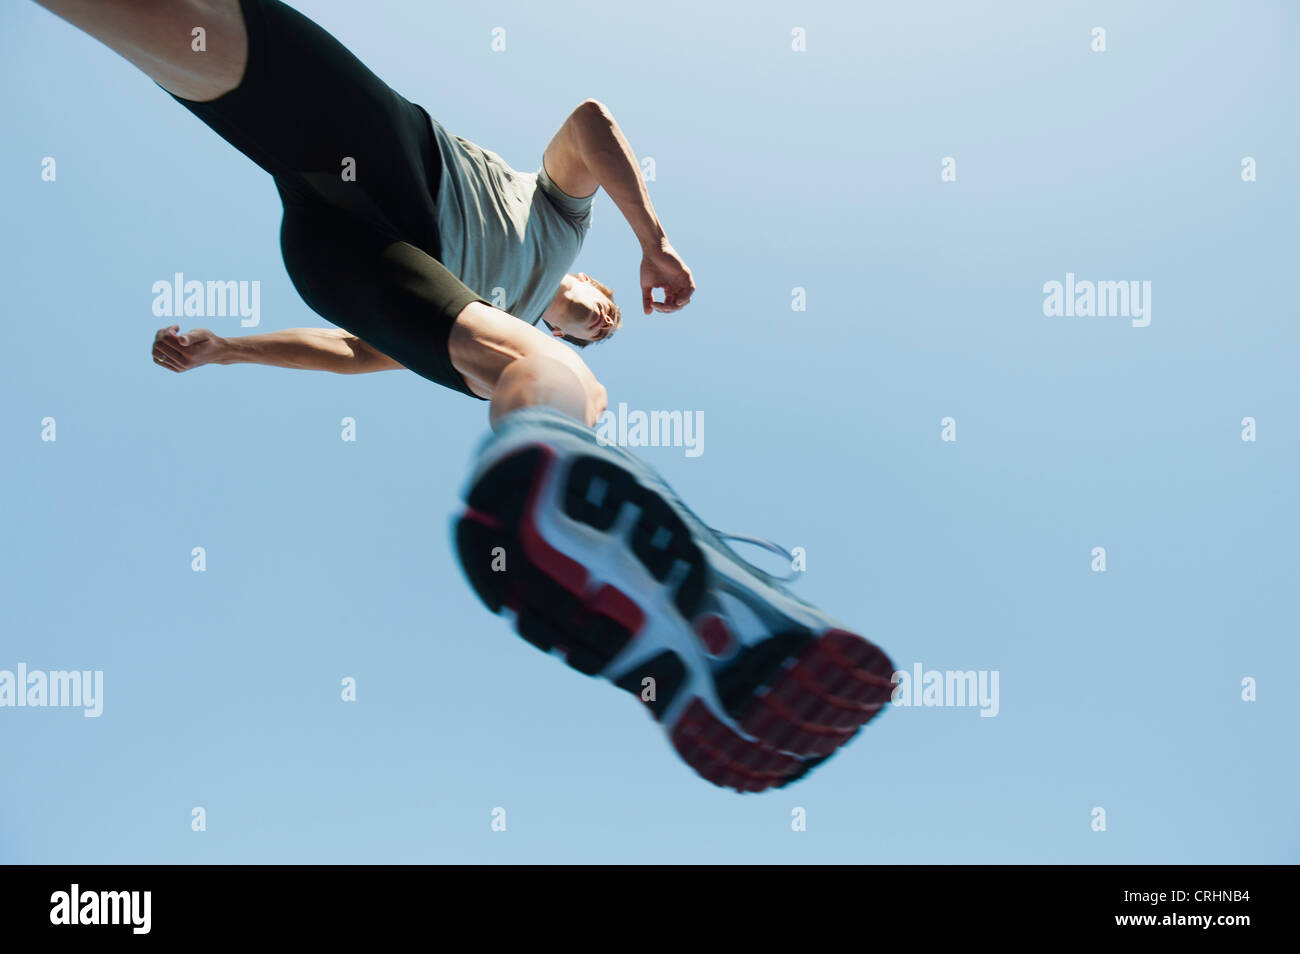 Runner in mid-stride, viewed from directly below Stock Photo